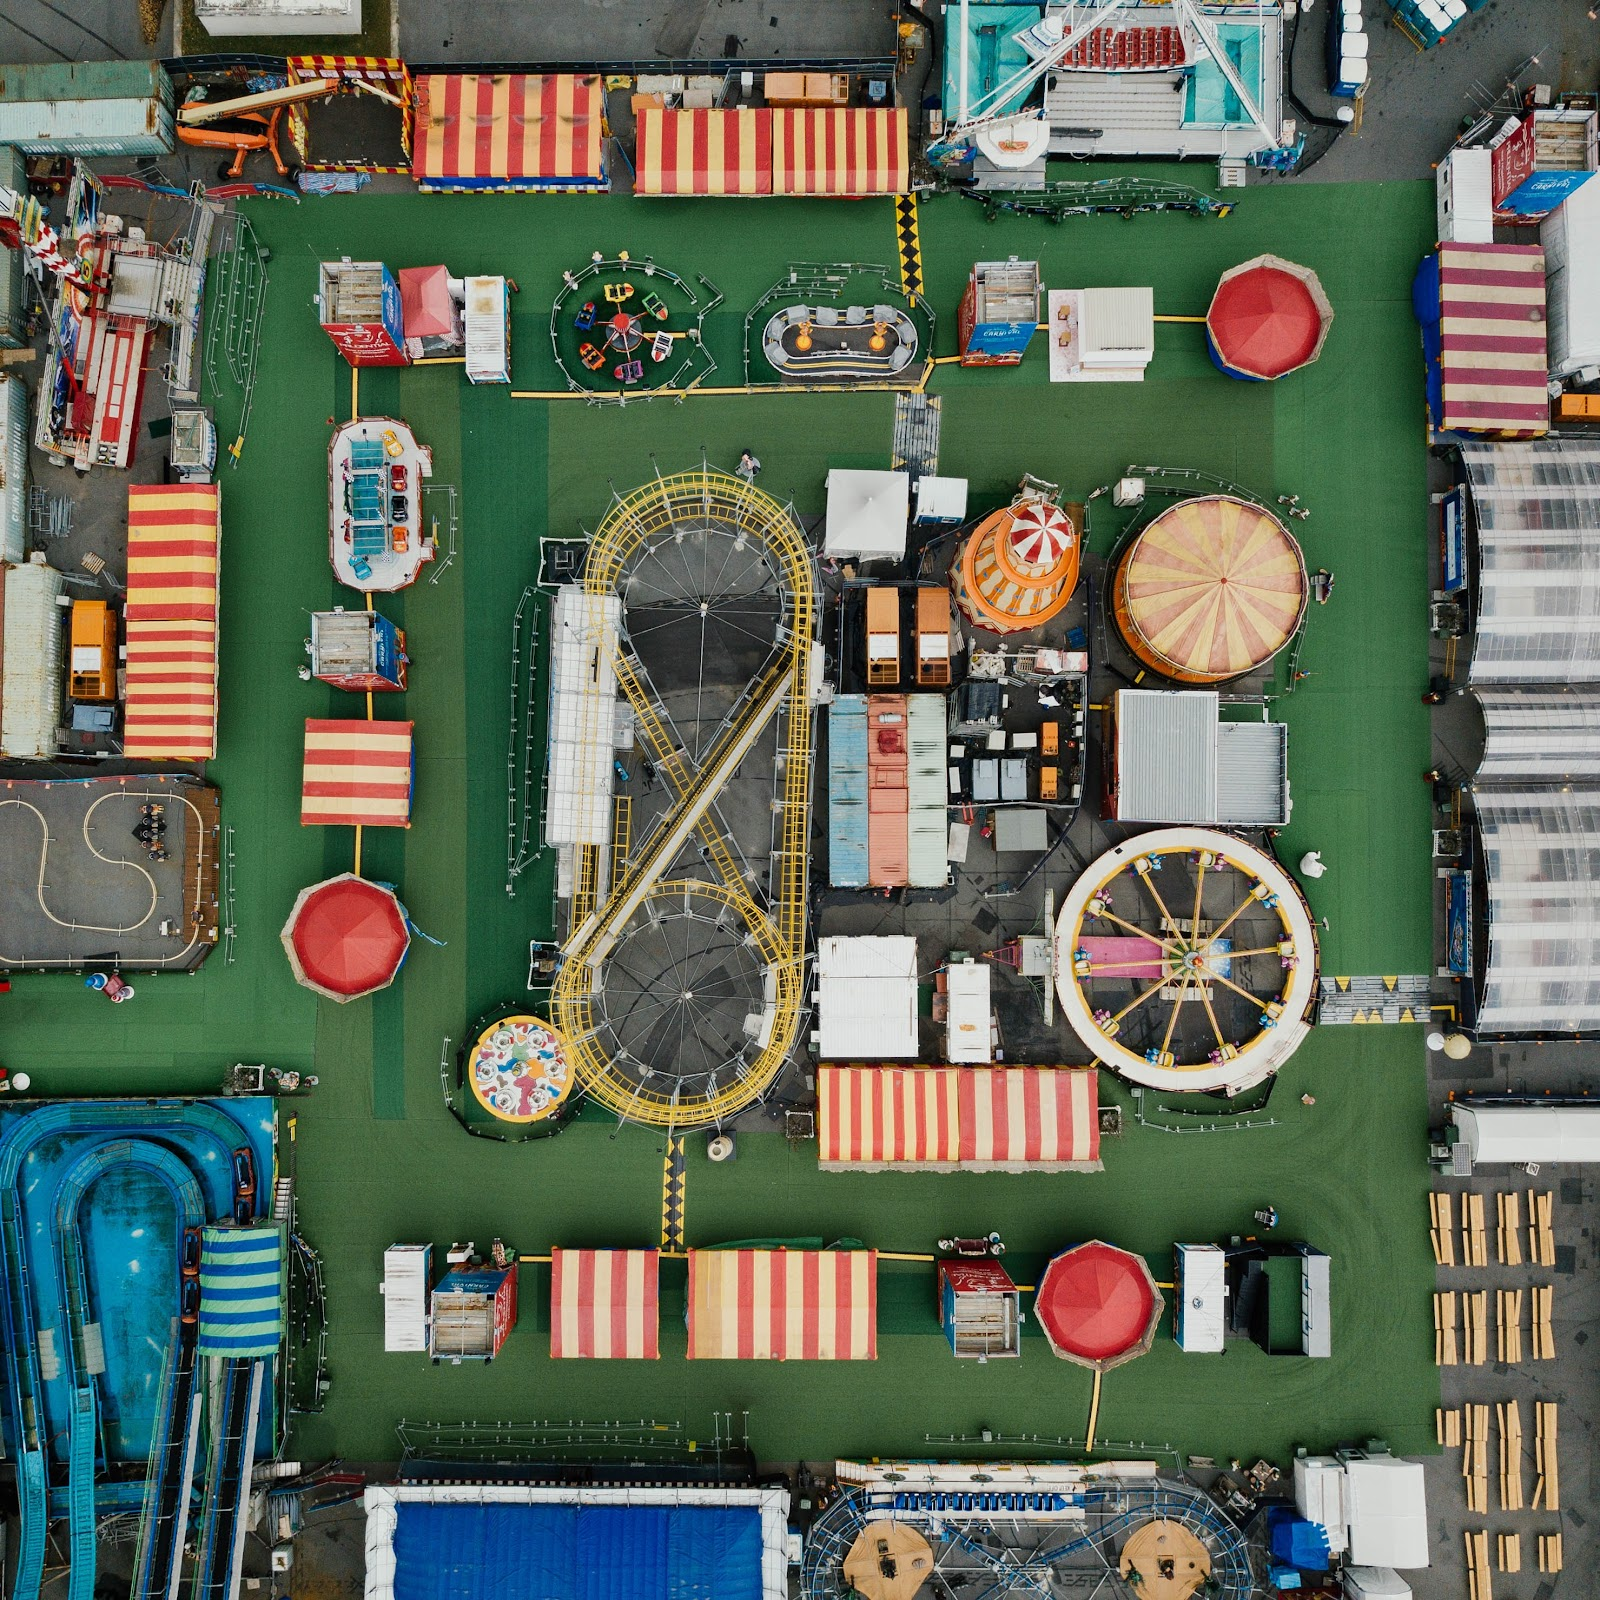 Aerial image of a carnival to illustrate the multiple points of entry and pathways an experience can take.